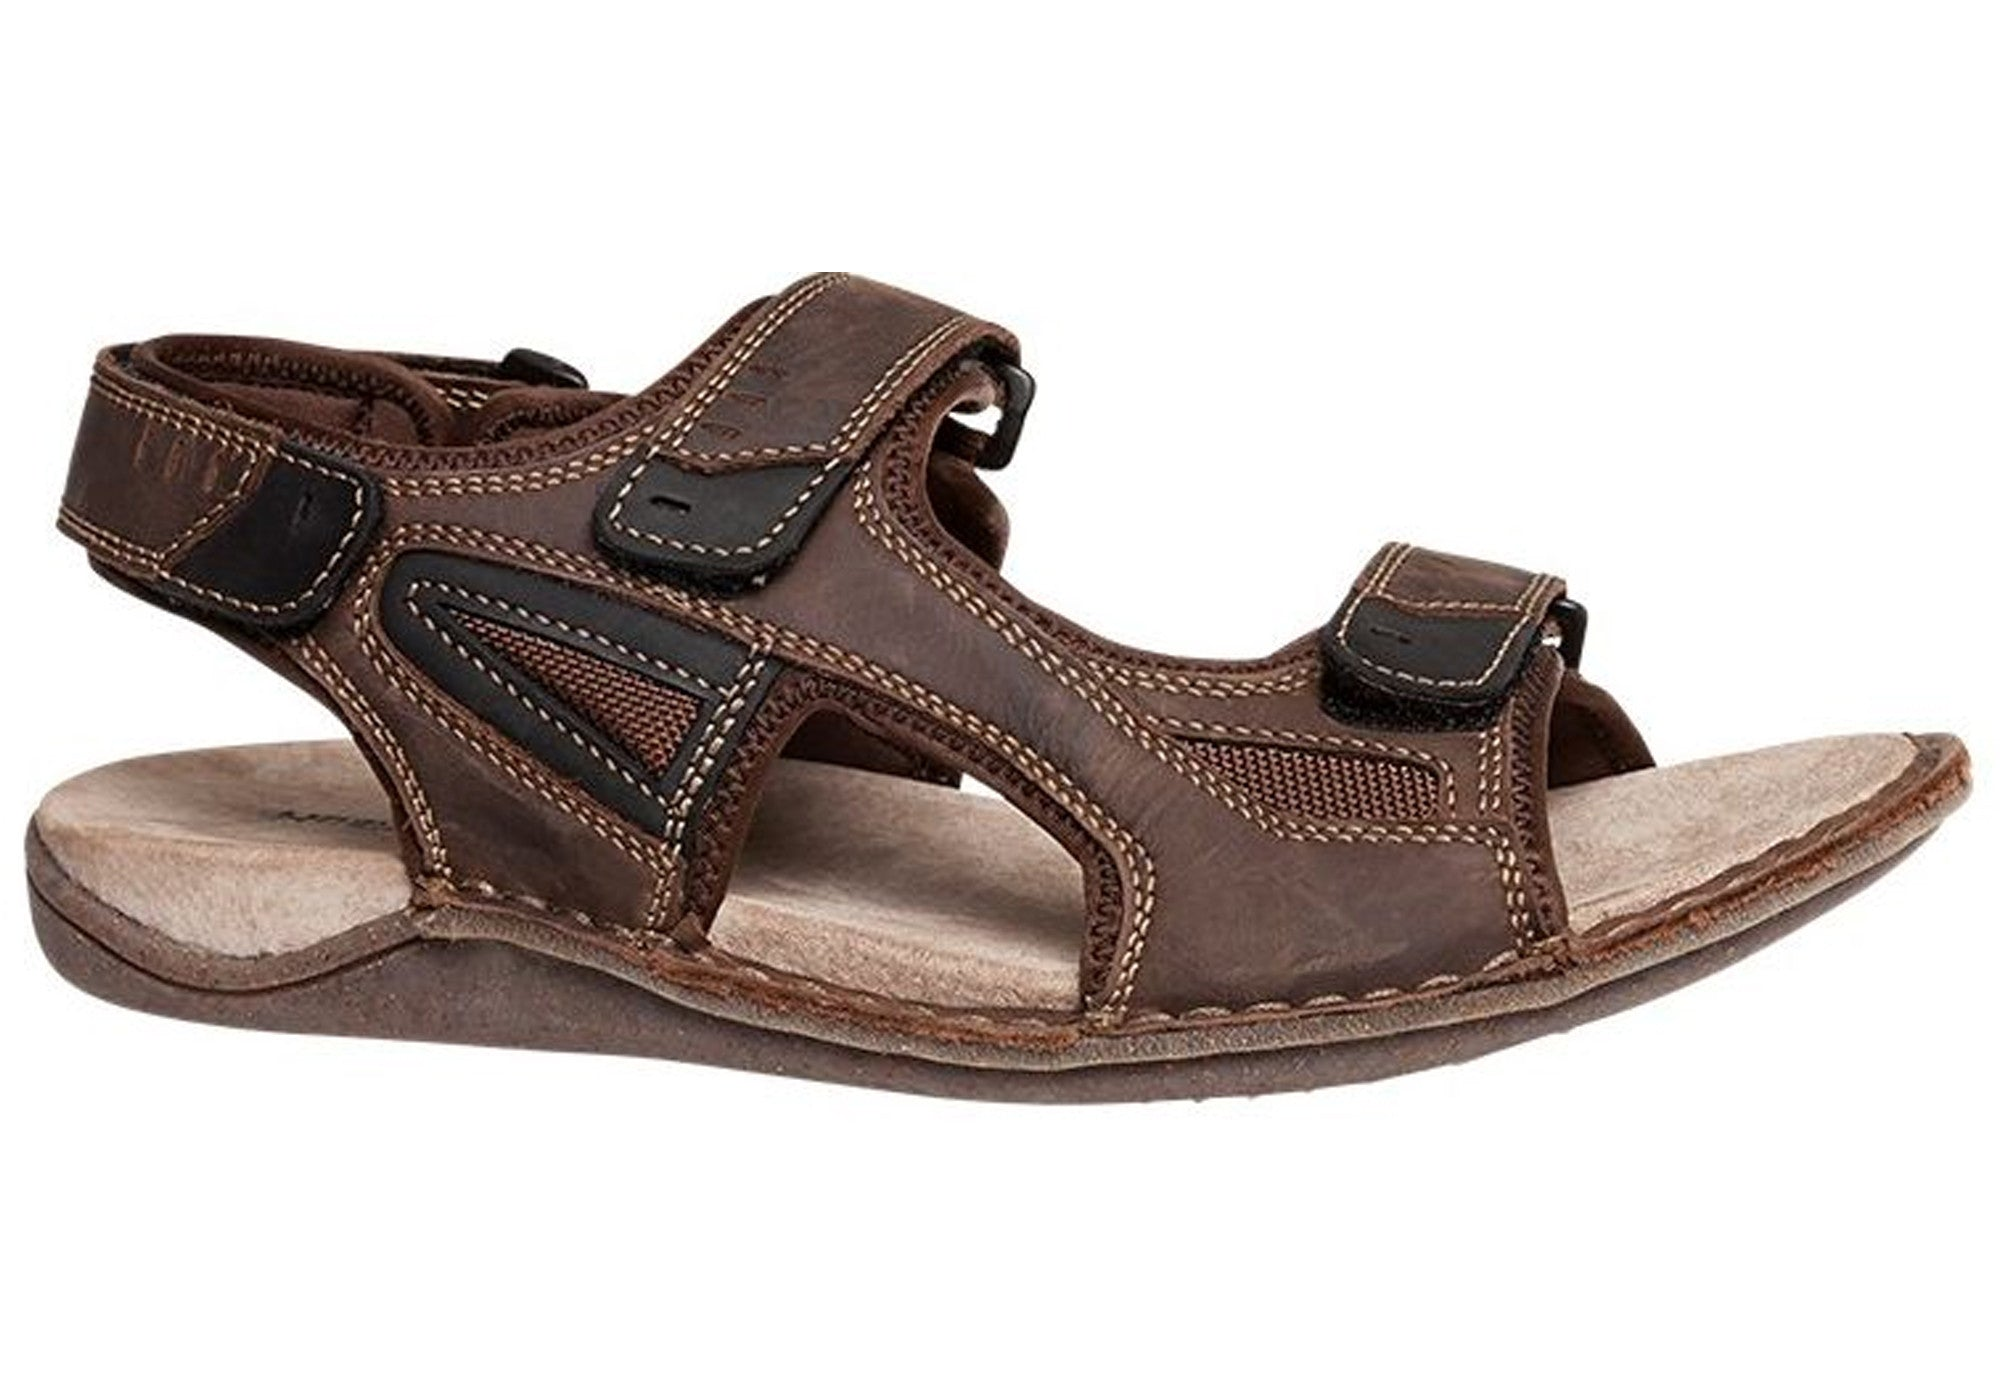 0f494b21d Home Hush Puppies Weapon Mens Leather Sandals. Brown · Black · Black